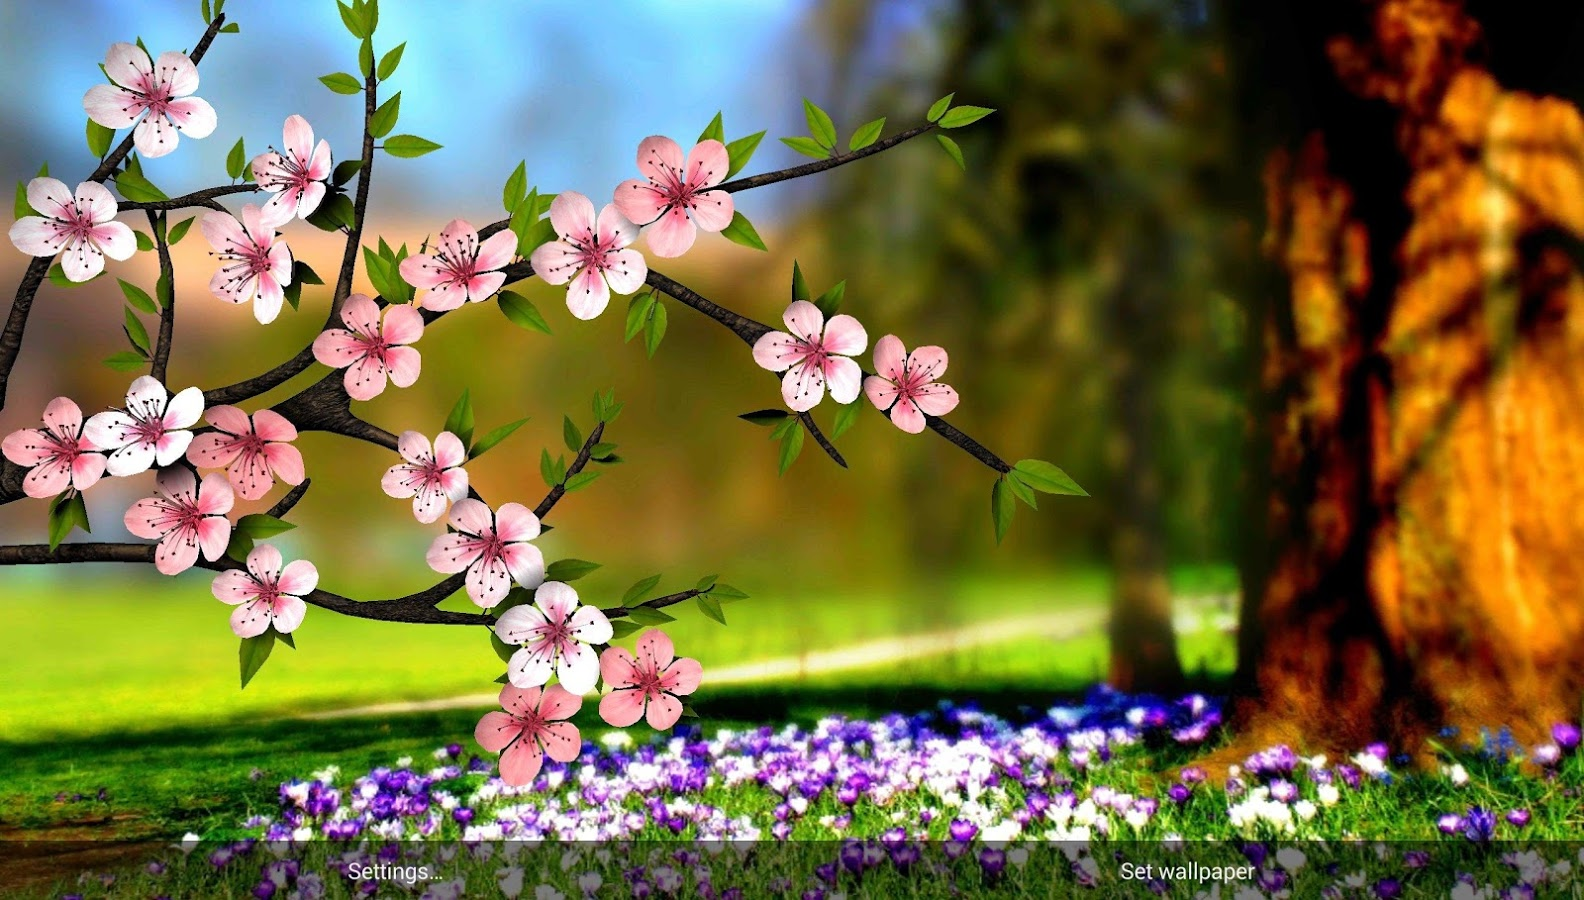 Spring Flowers 3D Parallax HD - Android Apps on Google Play